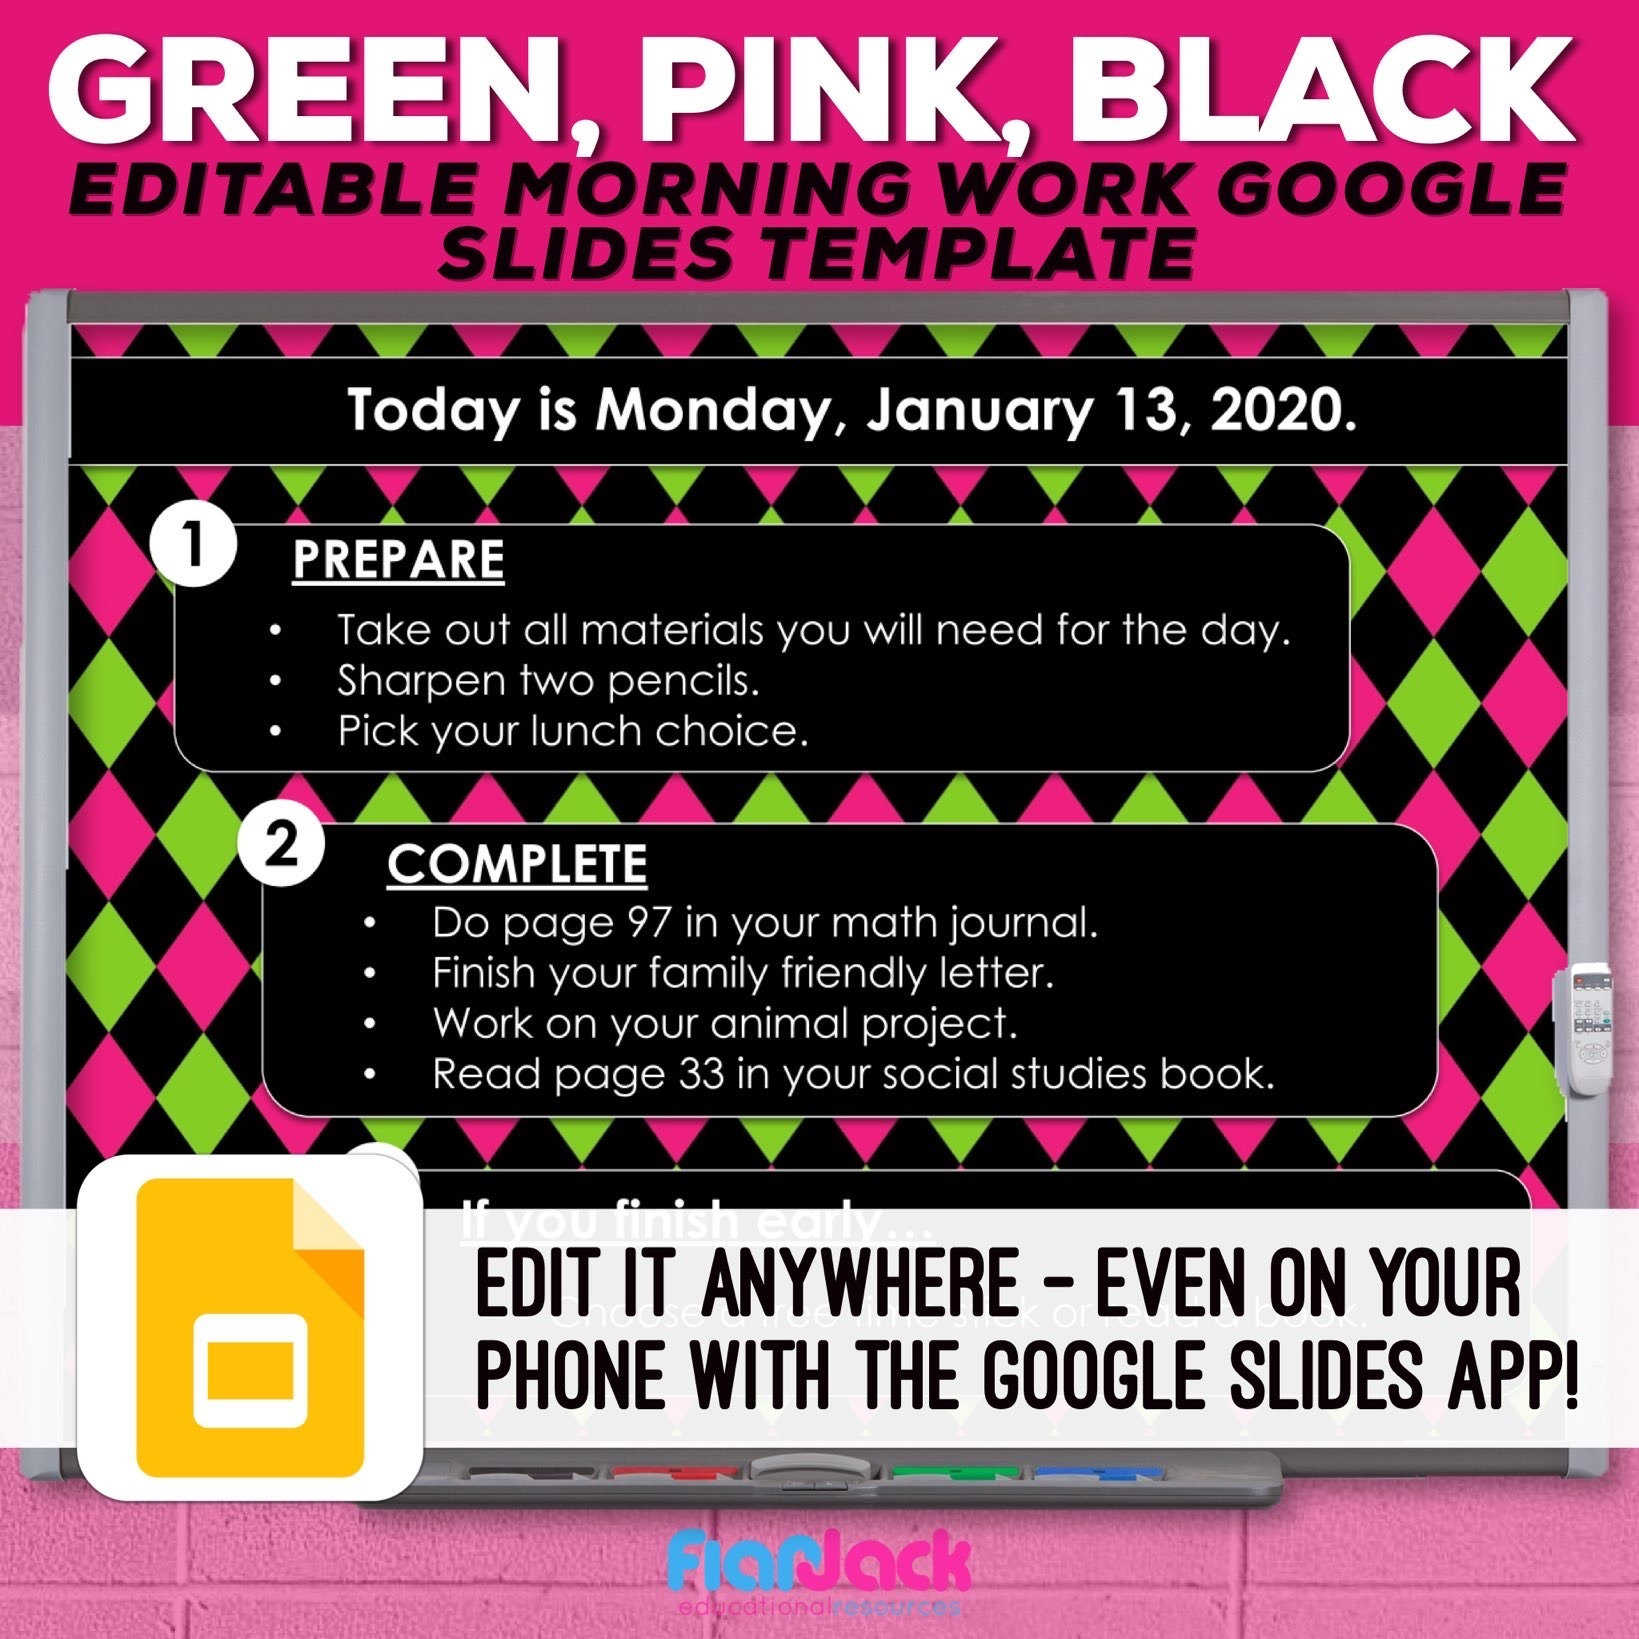 Editable Google Slide Templates | Green, Pink, And Black